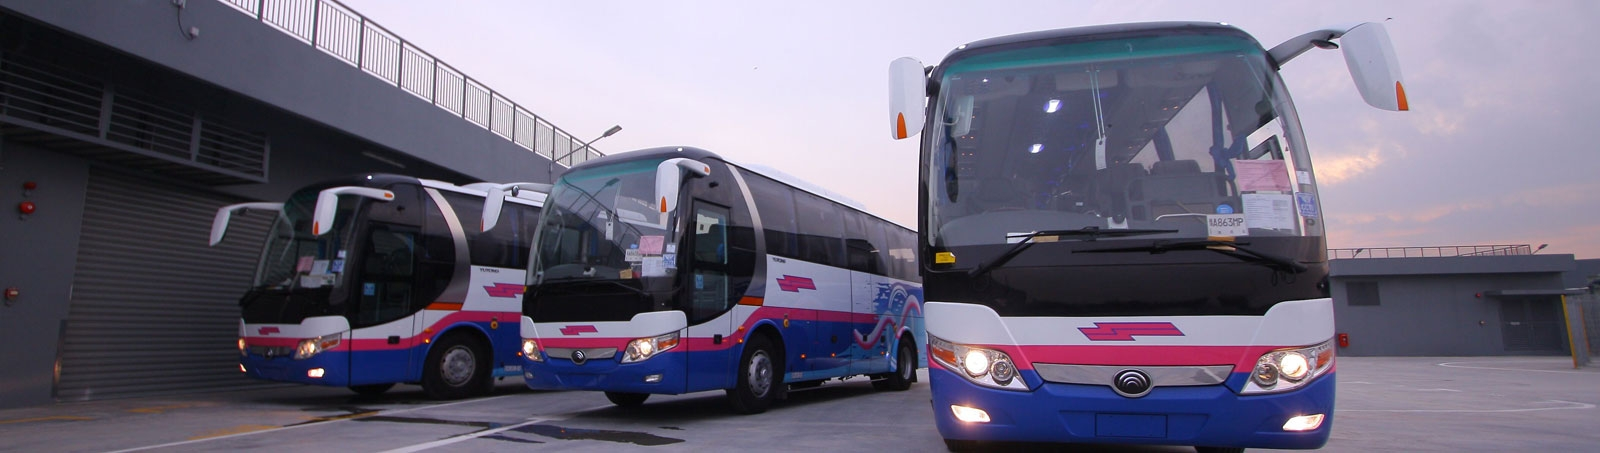 ANS Transit - Bus Rental Company  (@anstransit) Cover Image